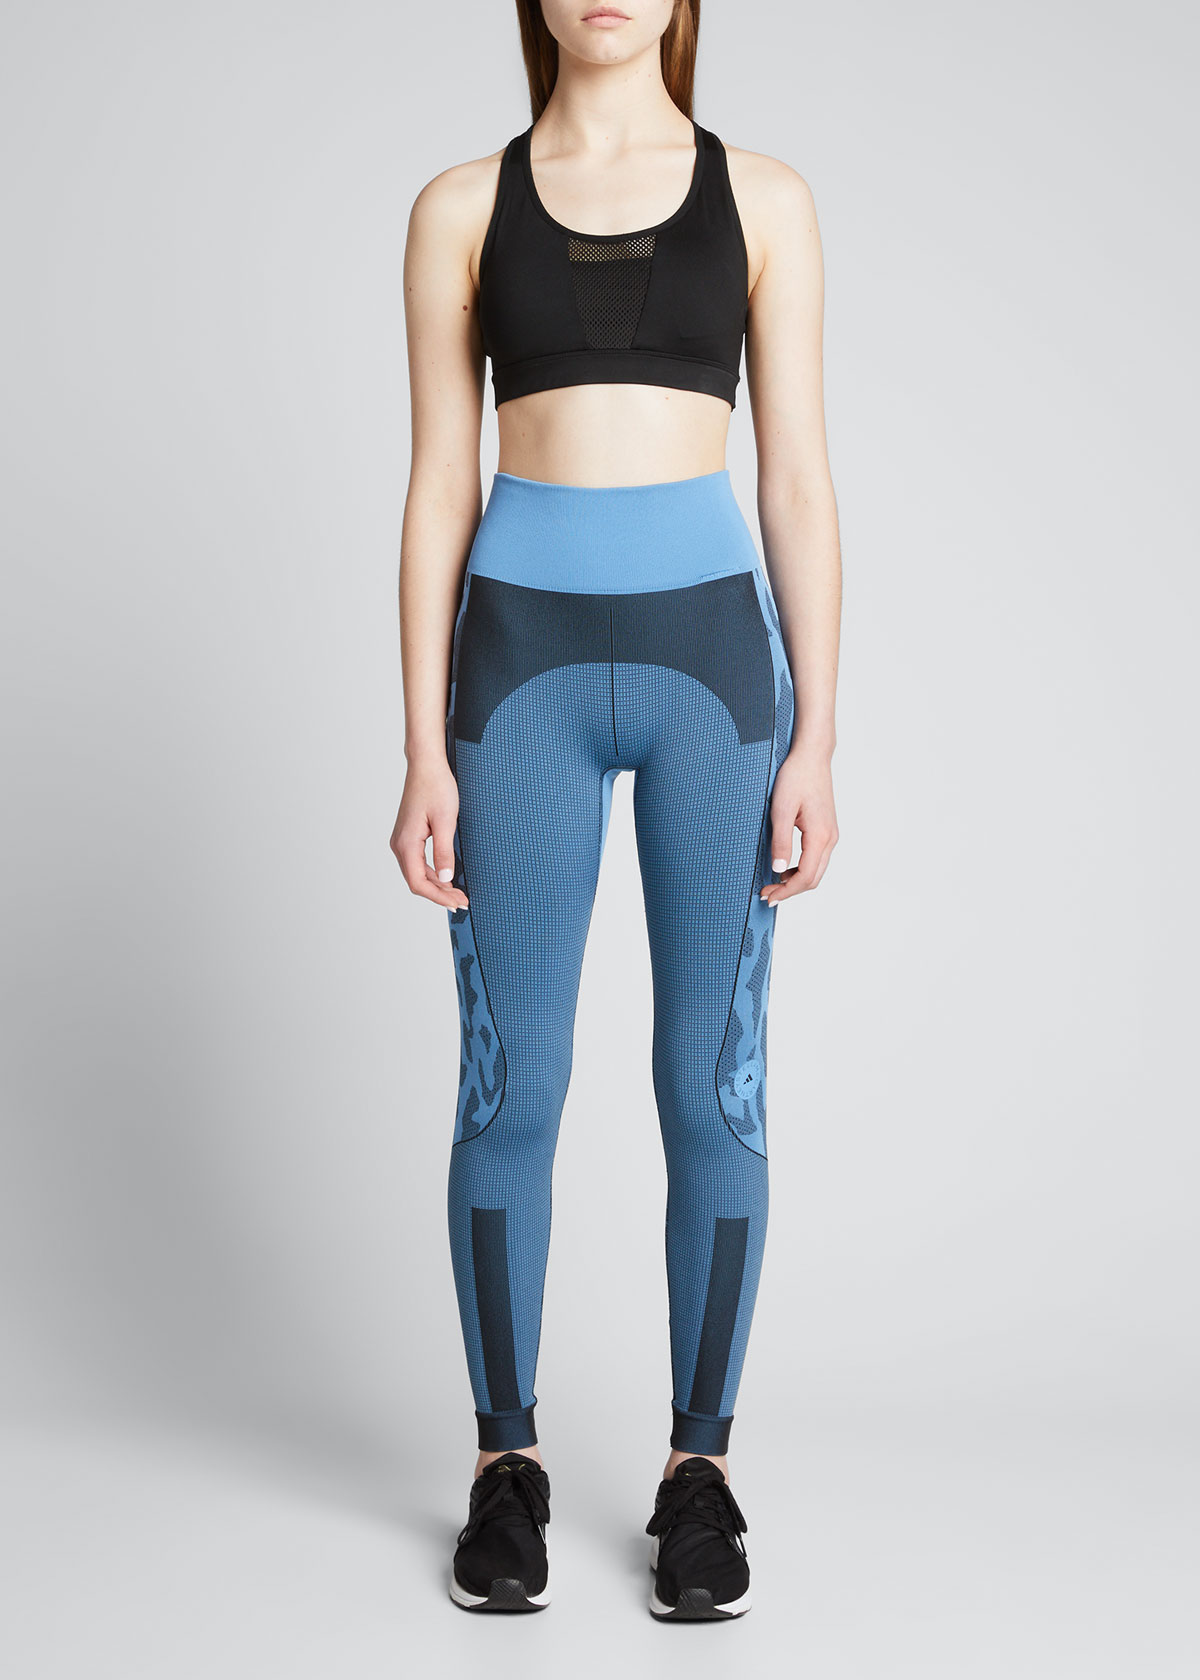 Adidas By Stella Mccartney TRUEPURPOSE ANIMAL-PRINT ACTIVE LEGGINGS